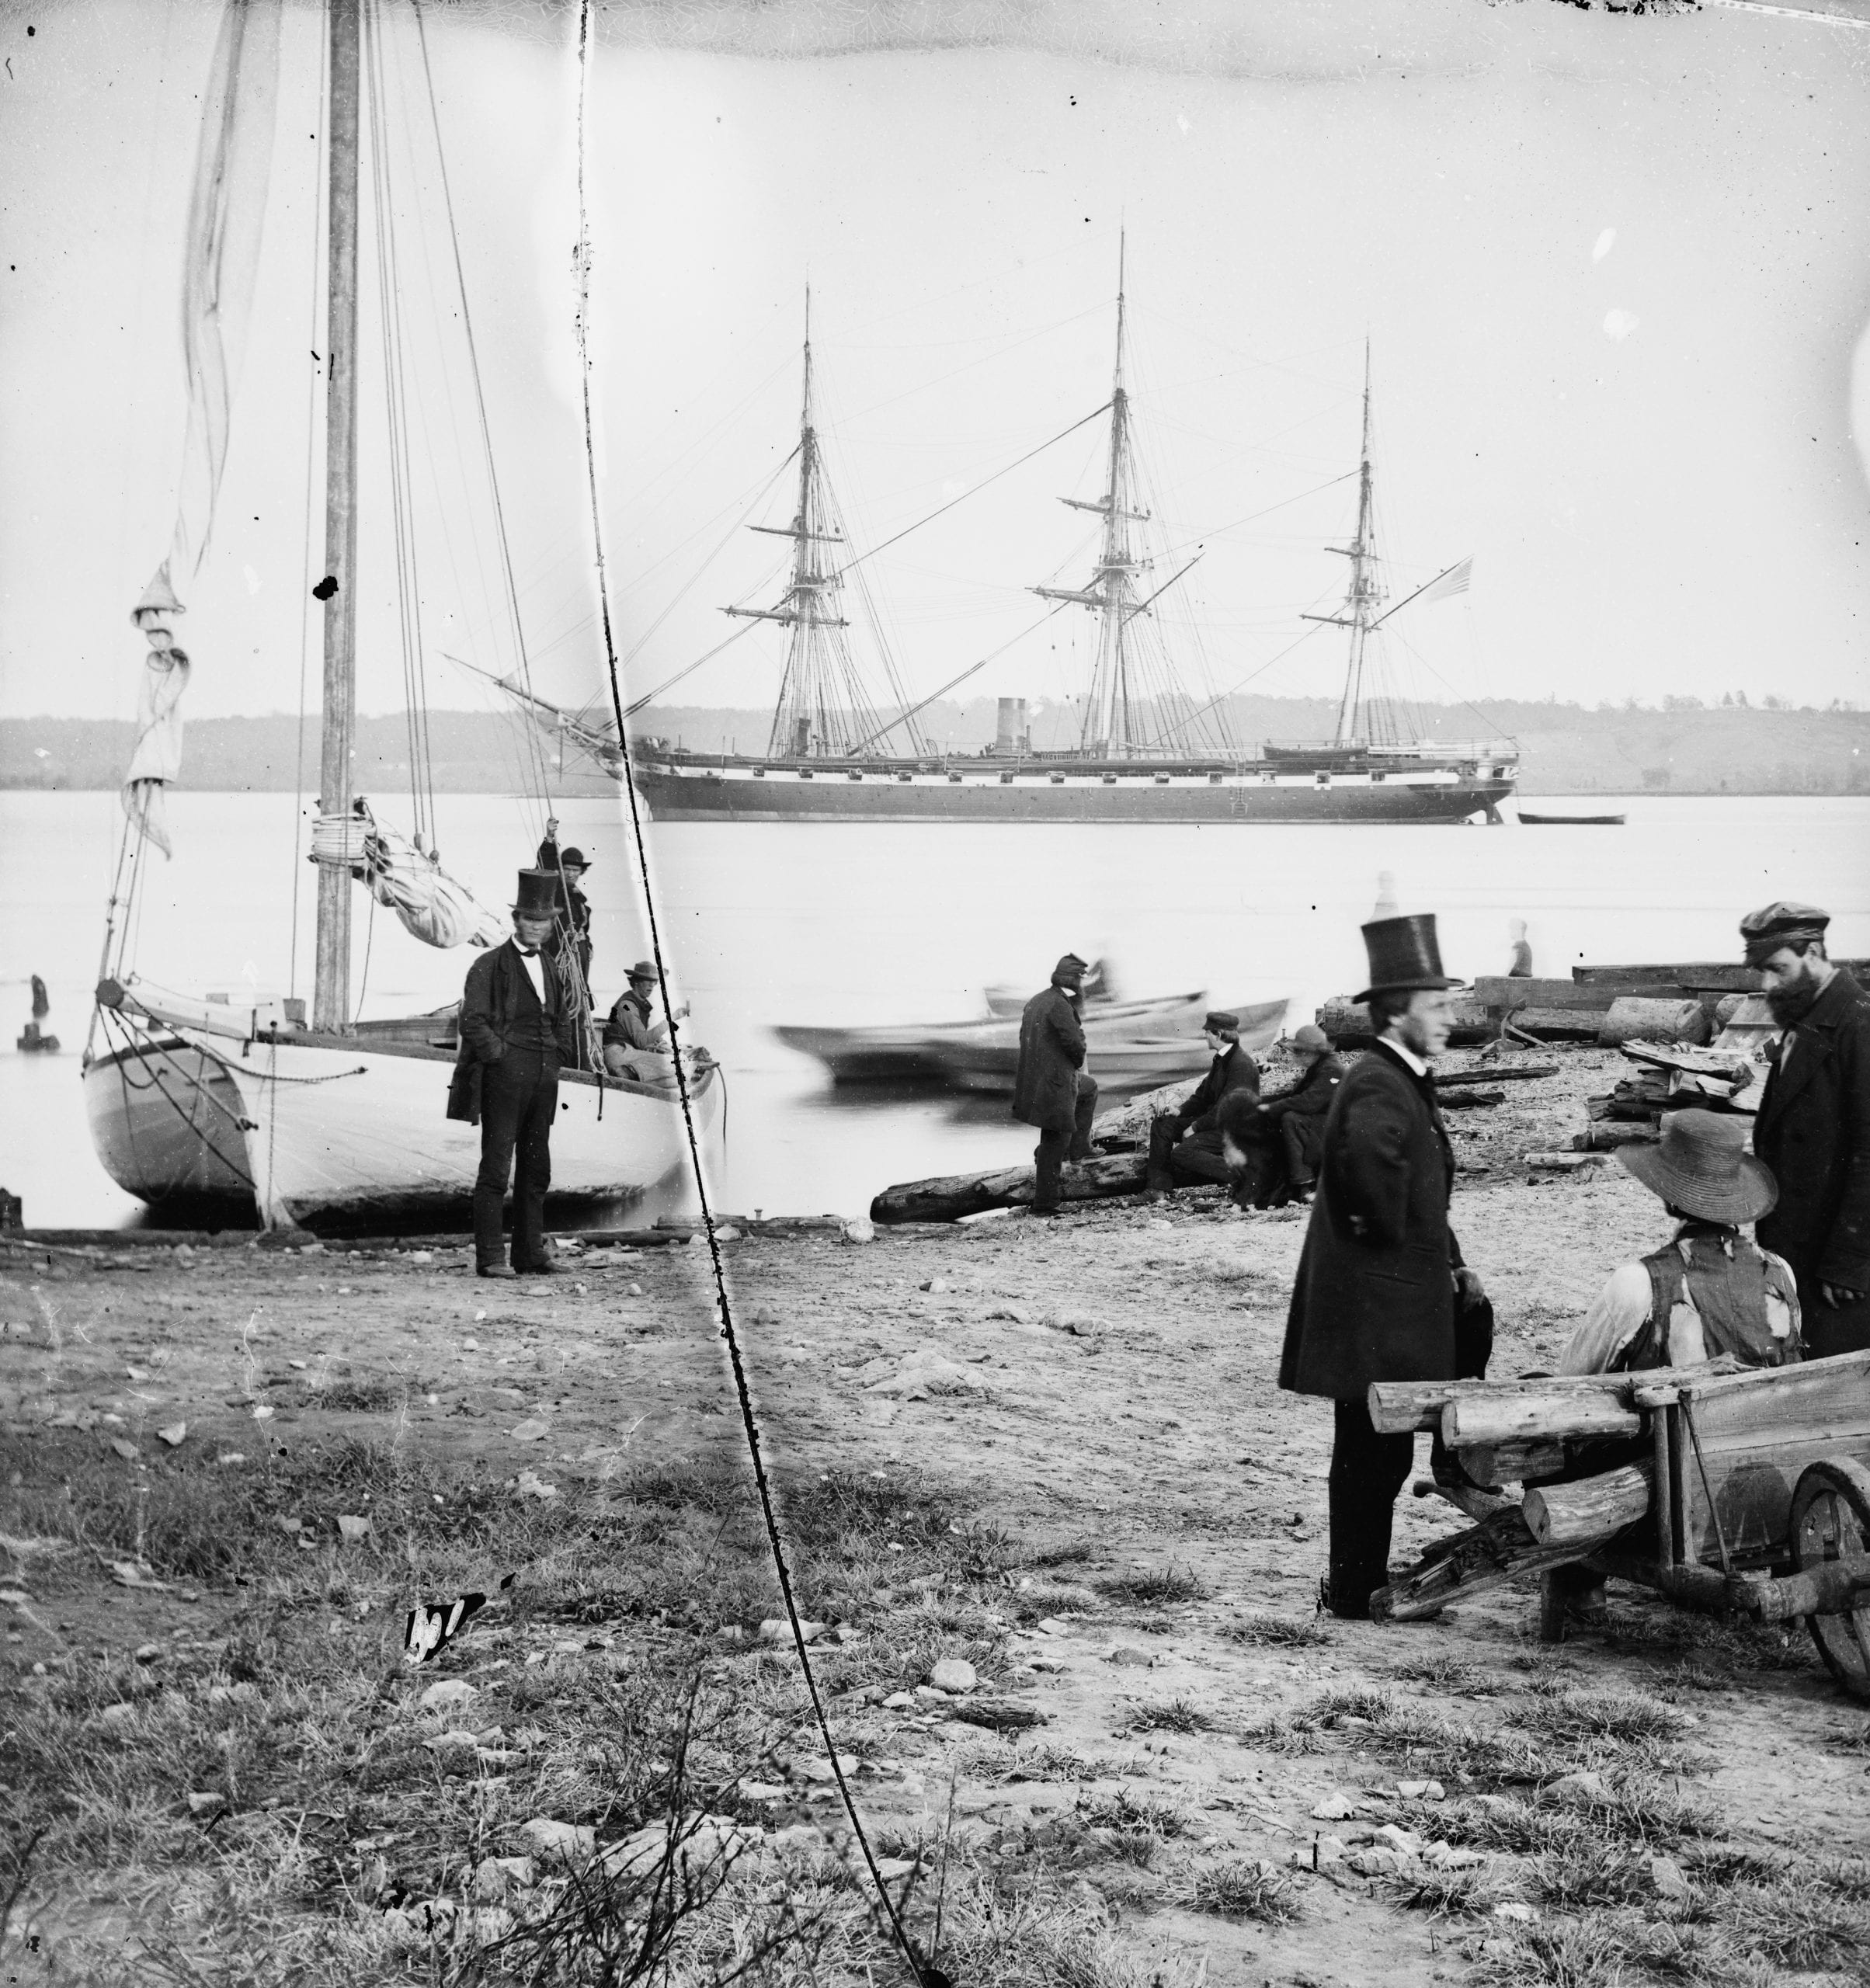 Alexandria, Va. Steam frigate Pensacola. Photographs of the Federal Navy, and seaborne expeditions against the Atlantic Coast of the Confederacy -- the Federal Navy, 1861-1865.